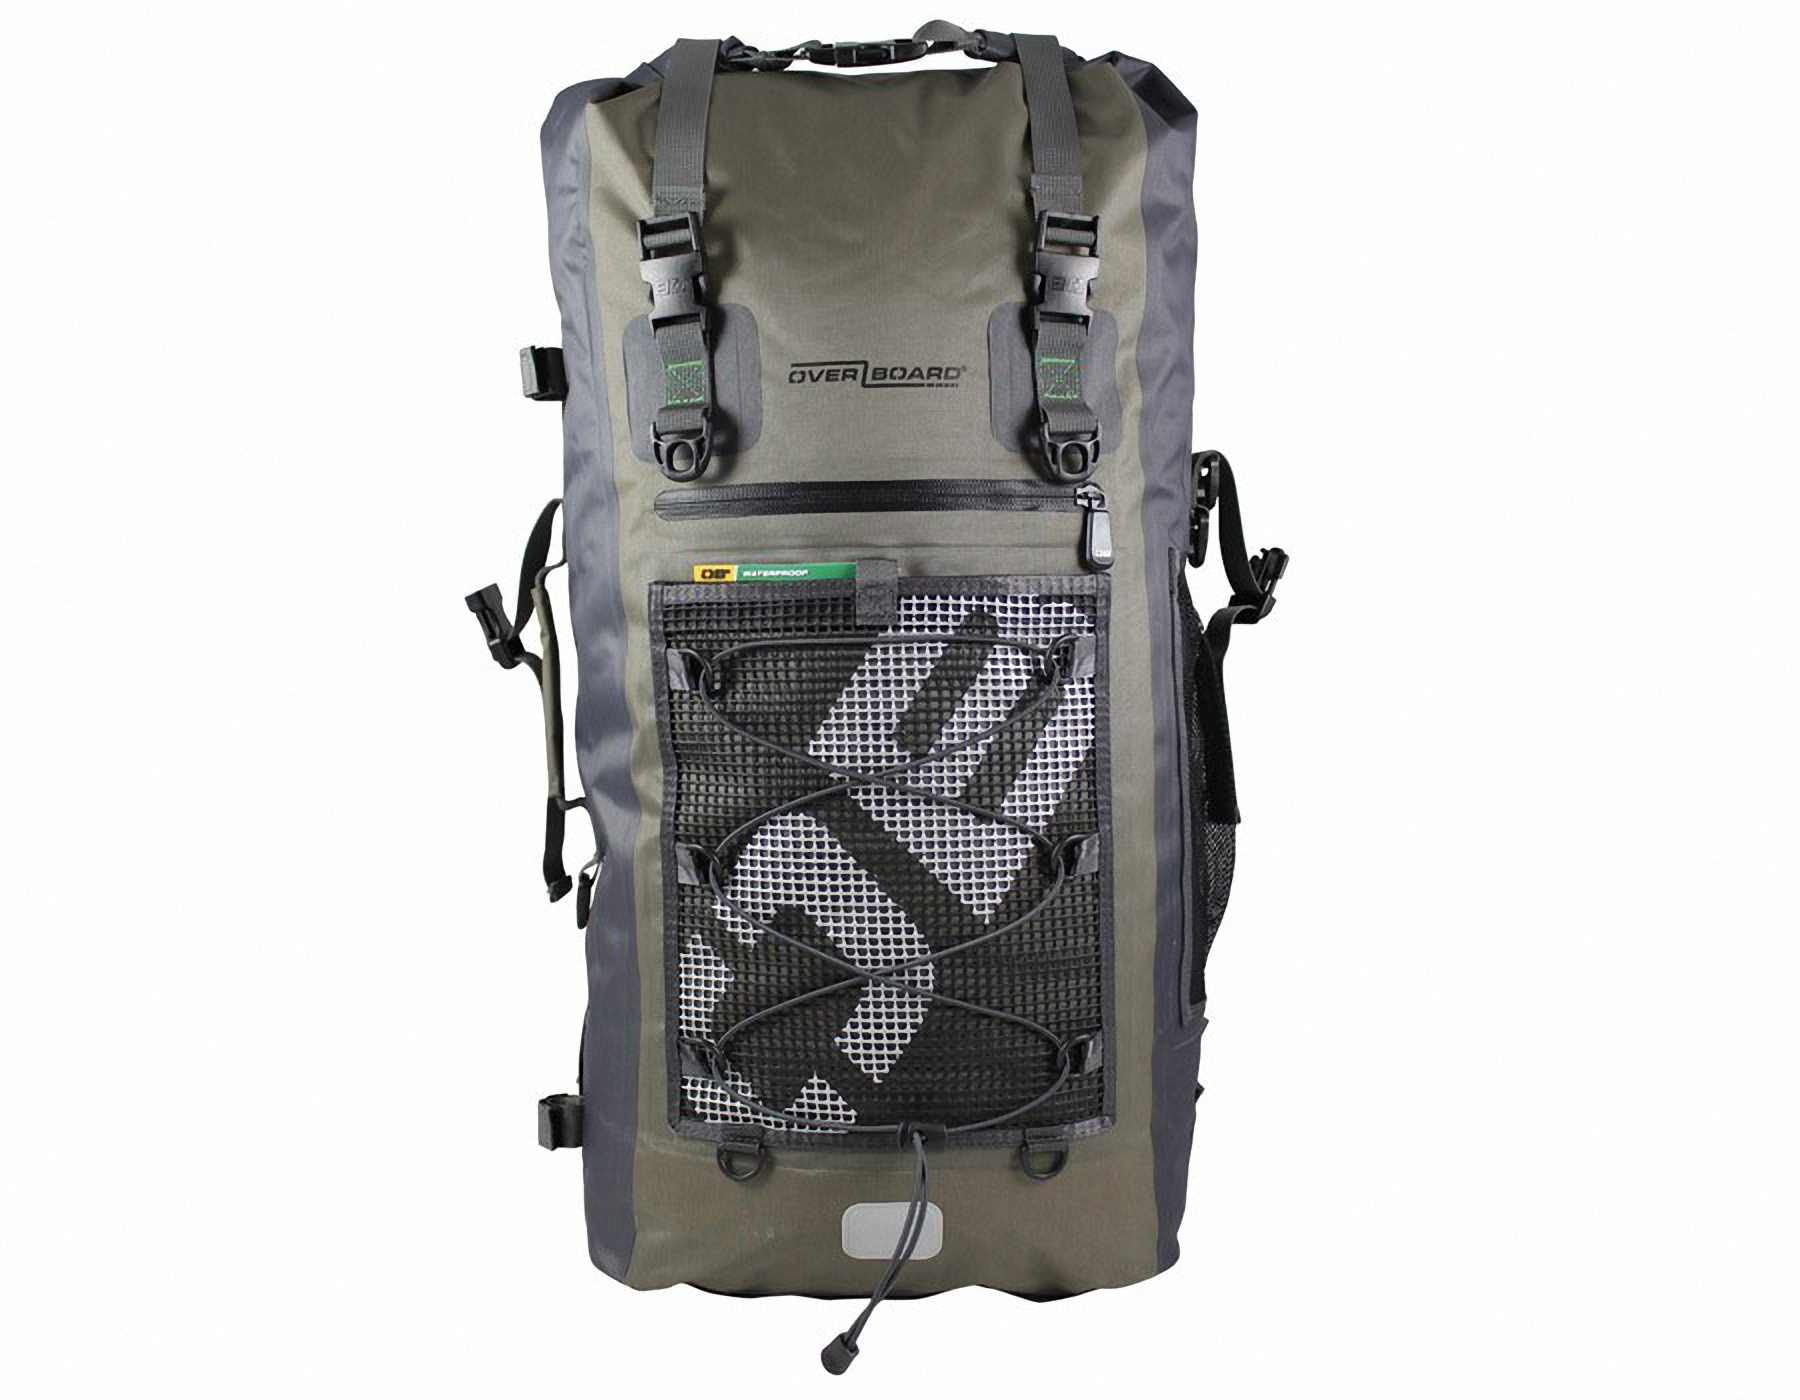 Водонепроницаемый рюкзак OverBoard OB1119G - Ultra-light Waterproof Backpack - 50L. Фото 1